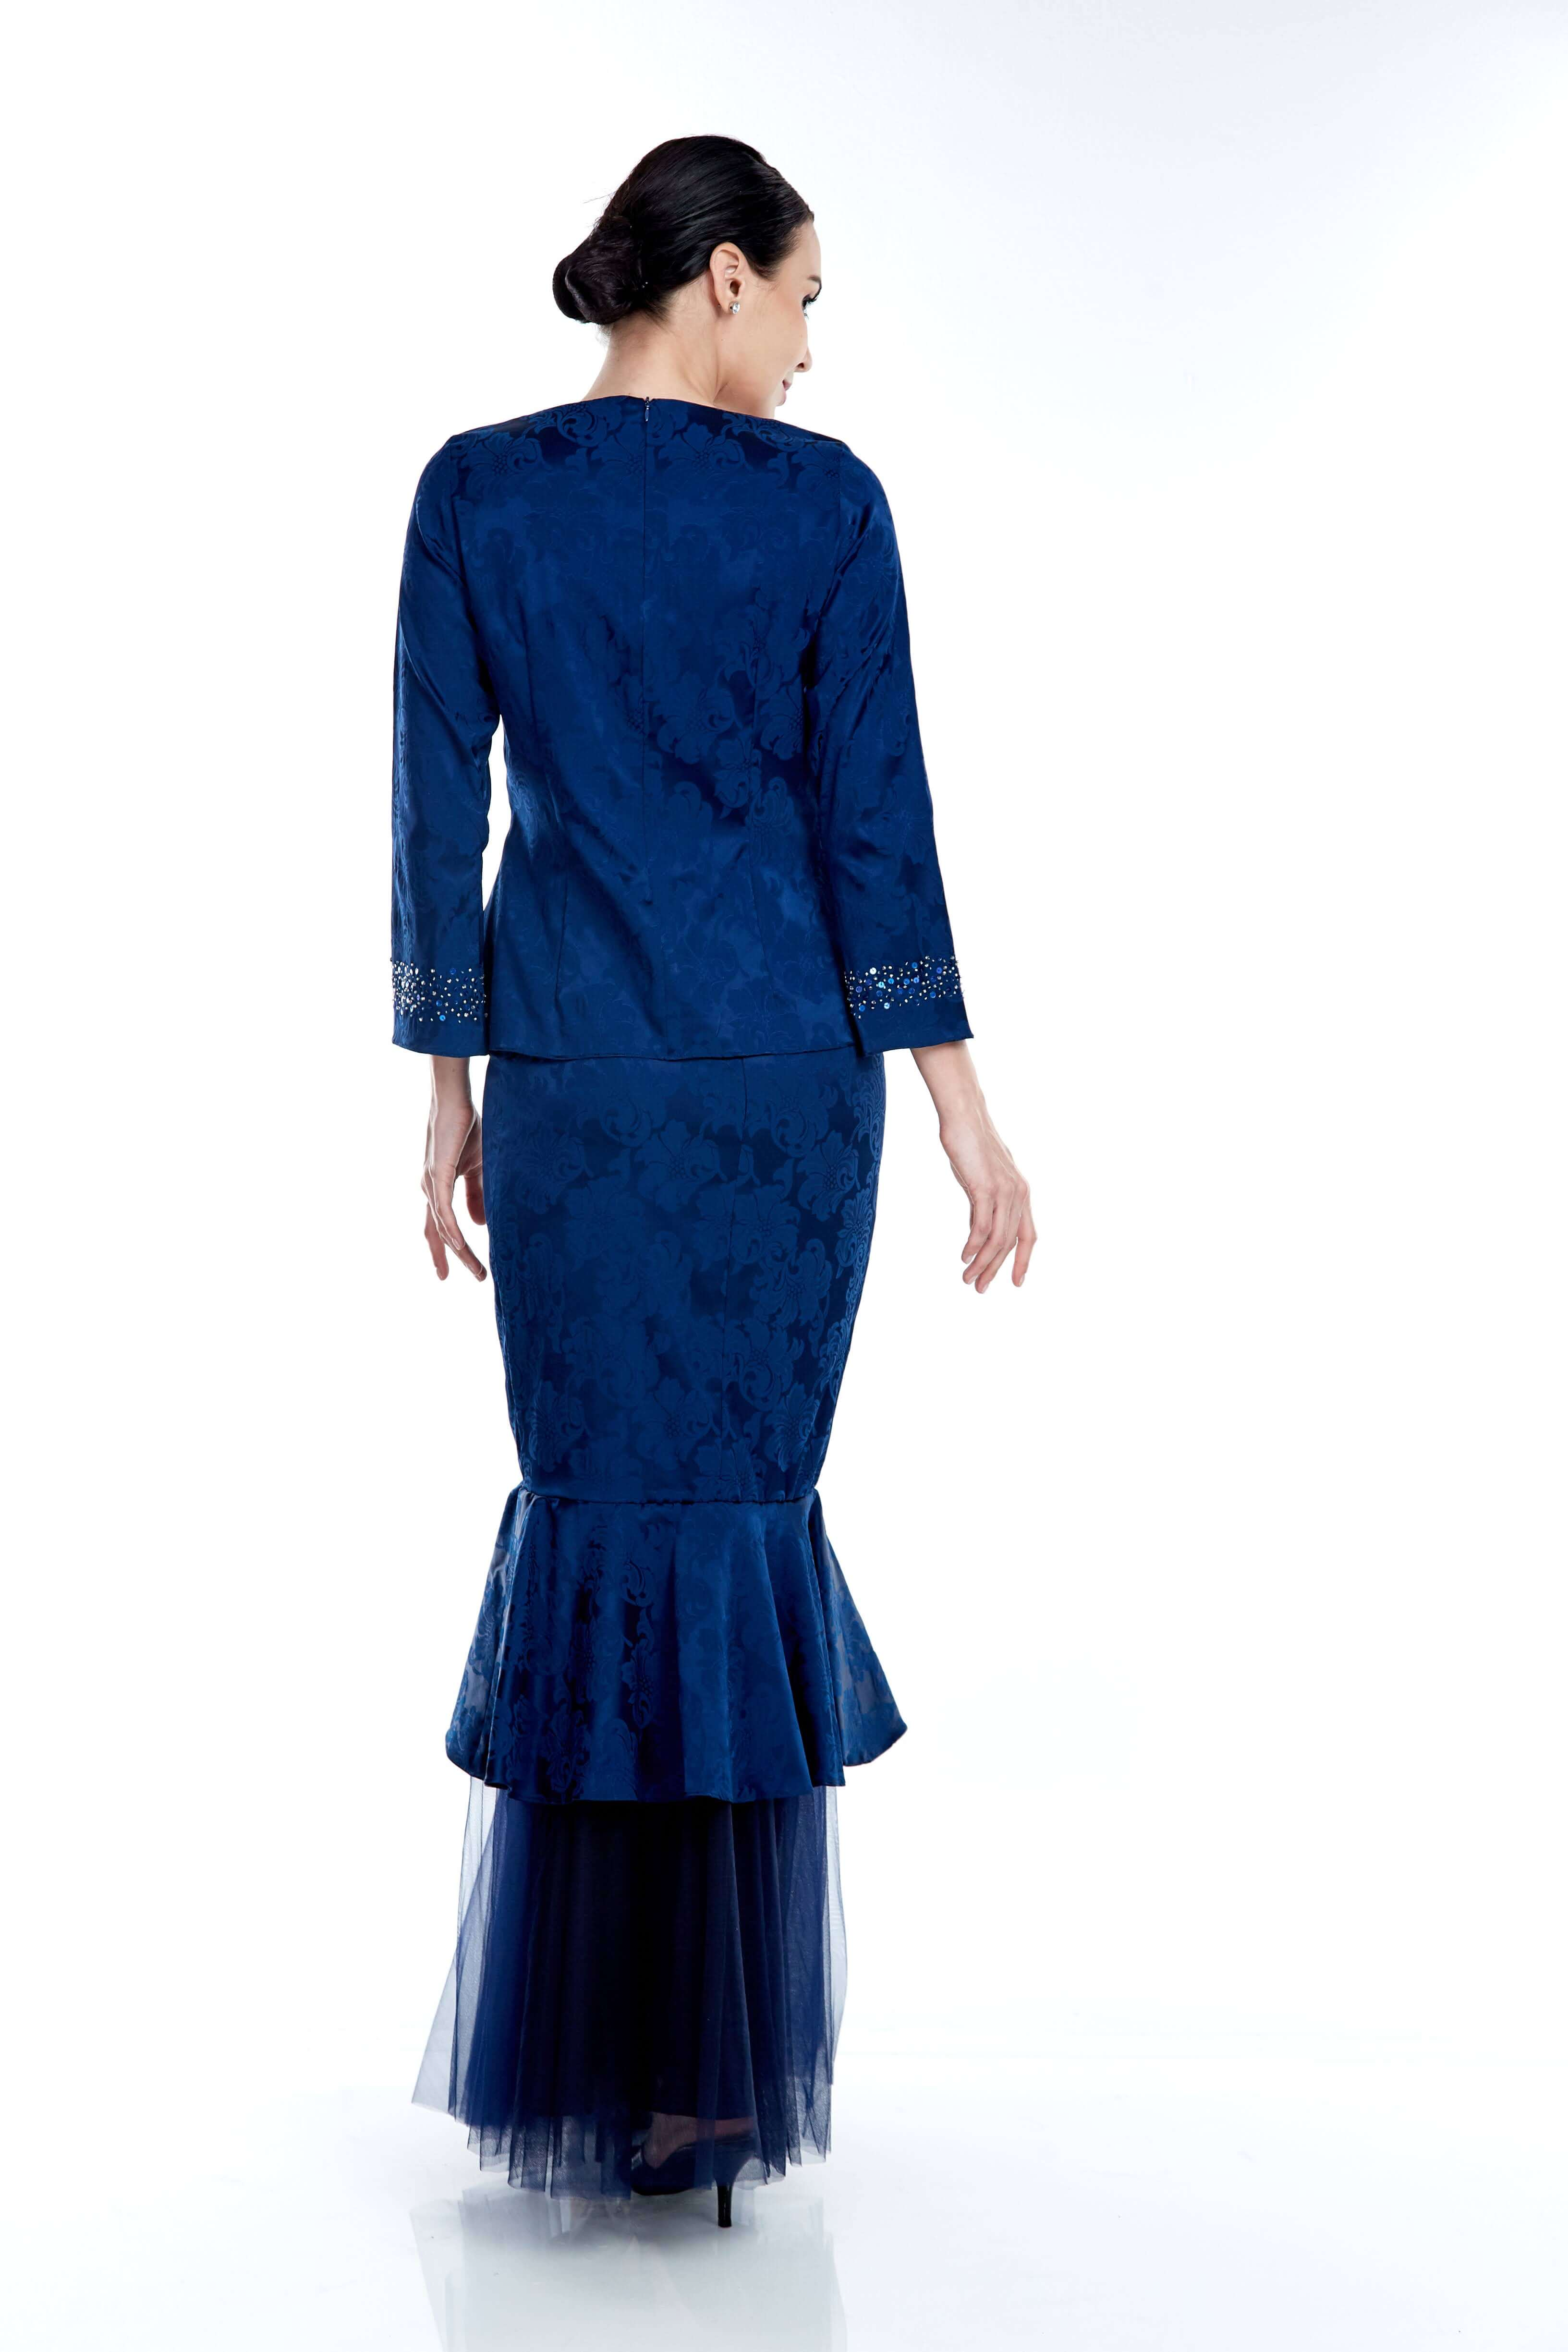 Navy Round Neck Top With Beading On Sleeve (6)